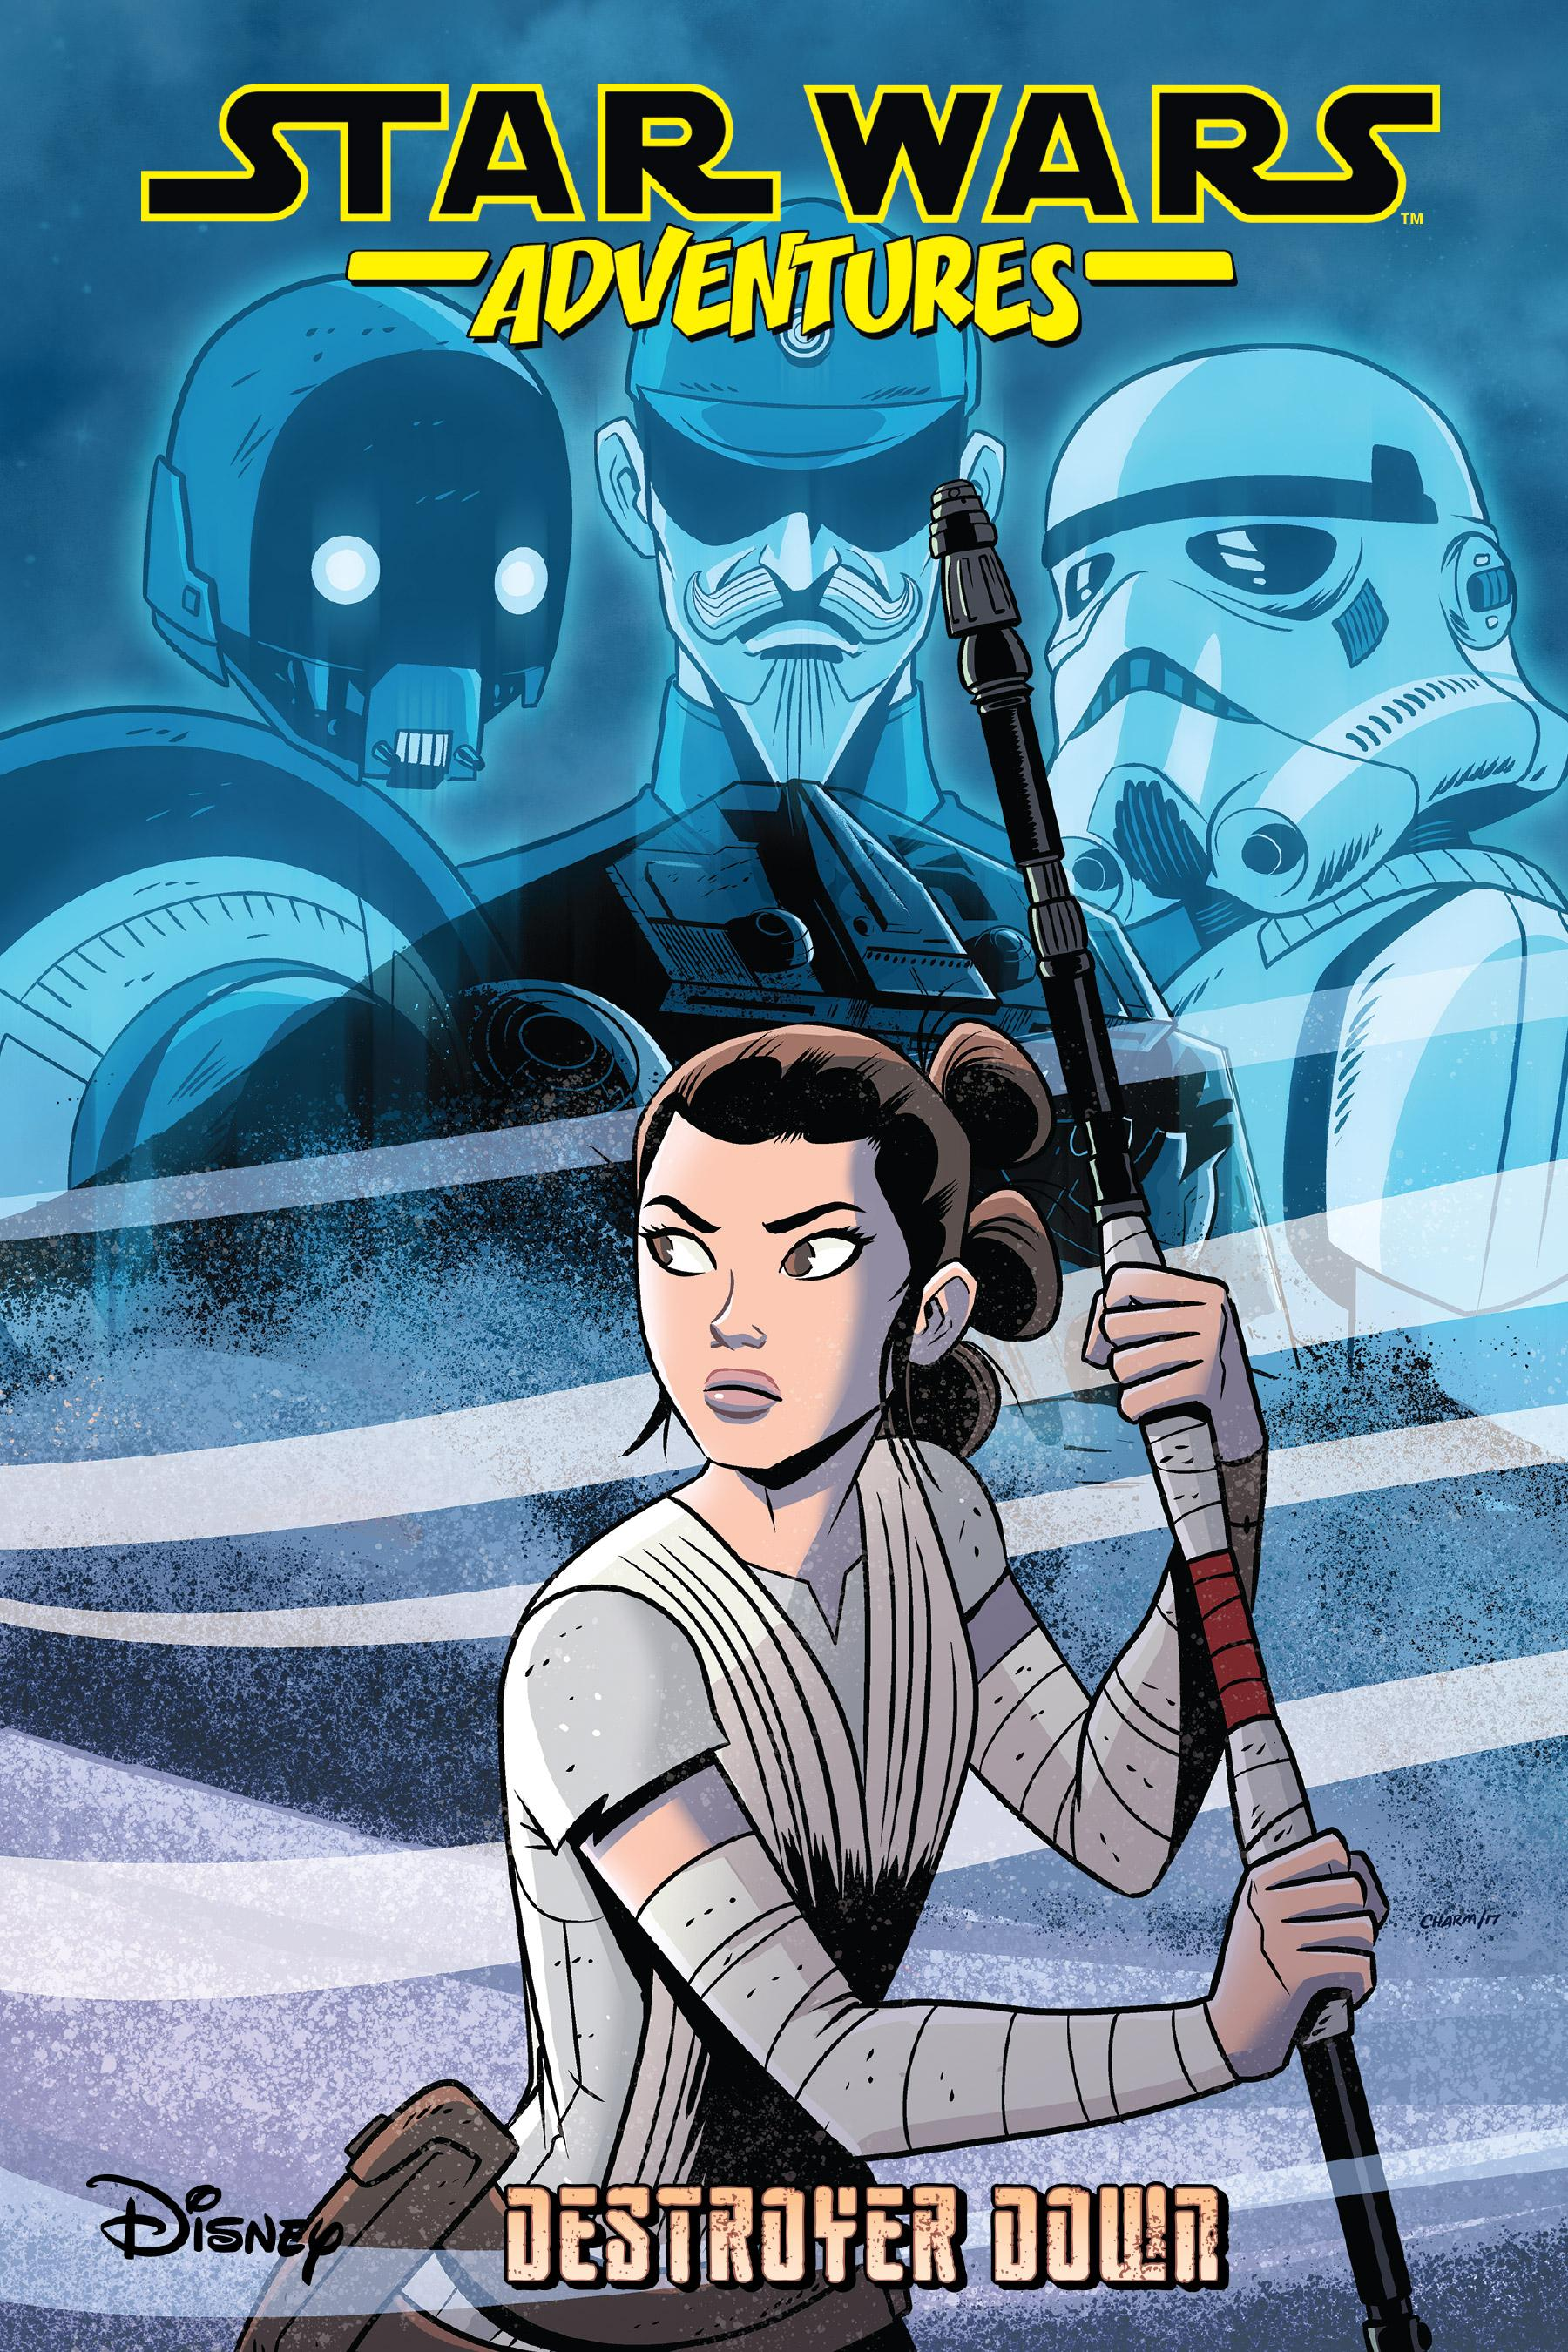 Star Wars Adventures-Destroyer Down 2019 Digital Kileko